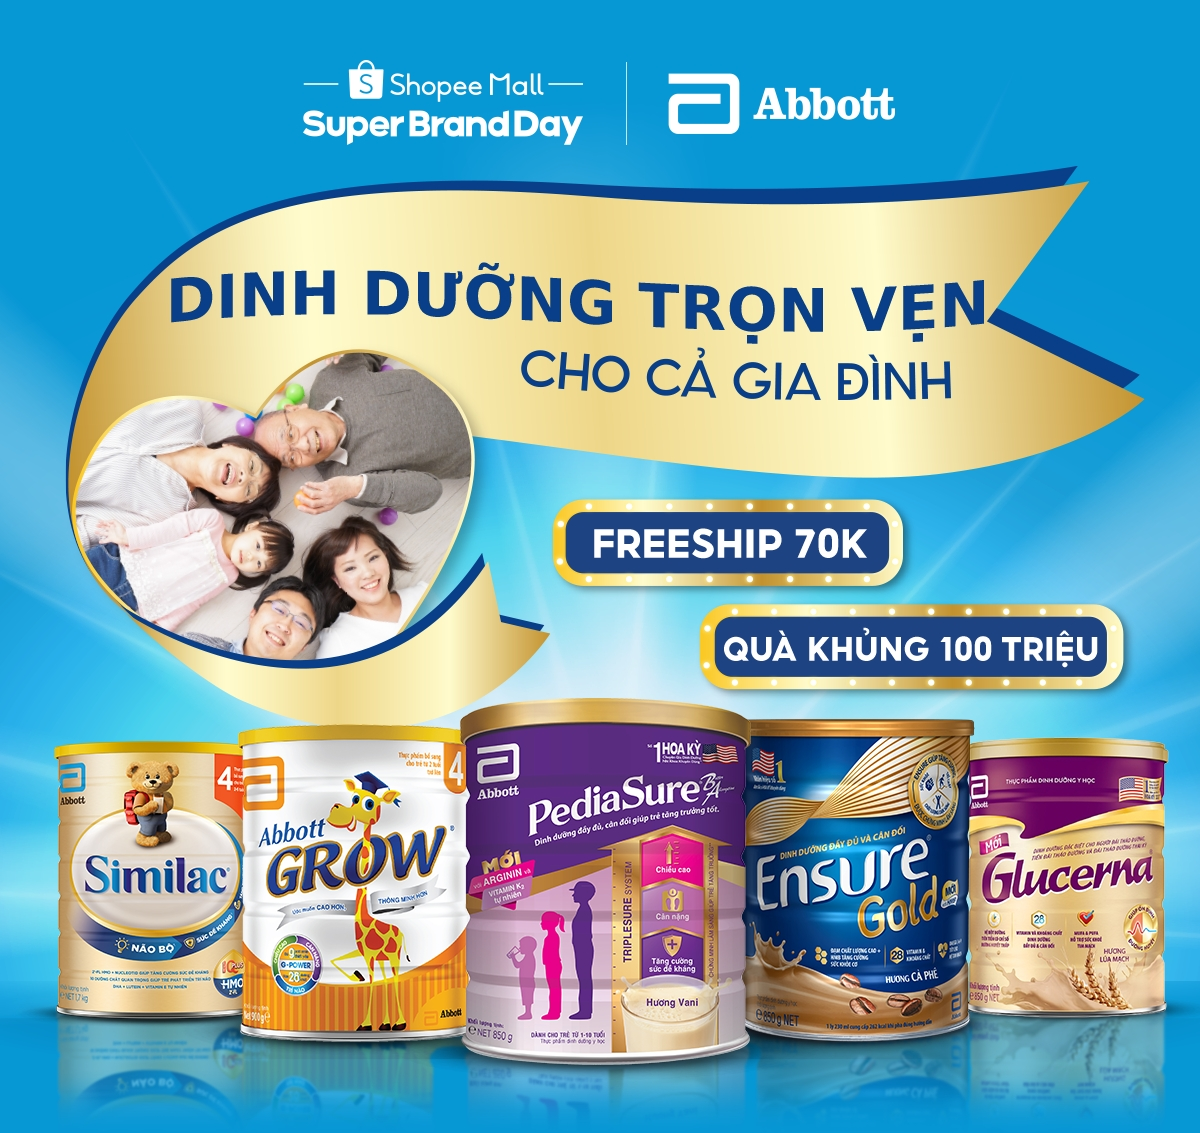 Abbott and Shopee to soon celebrate Family Nutrition Day